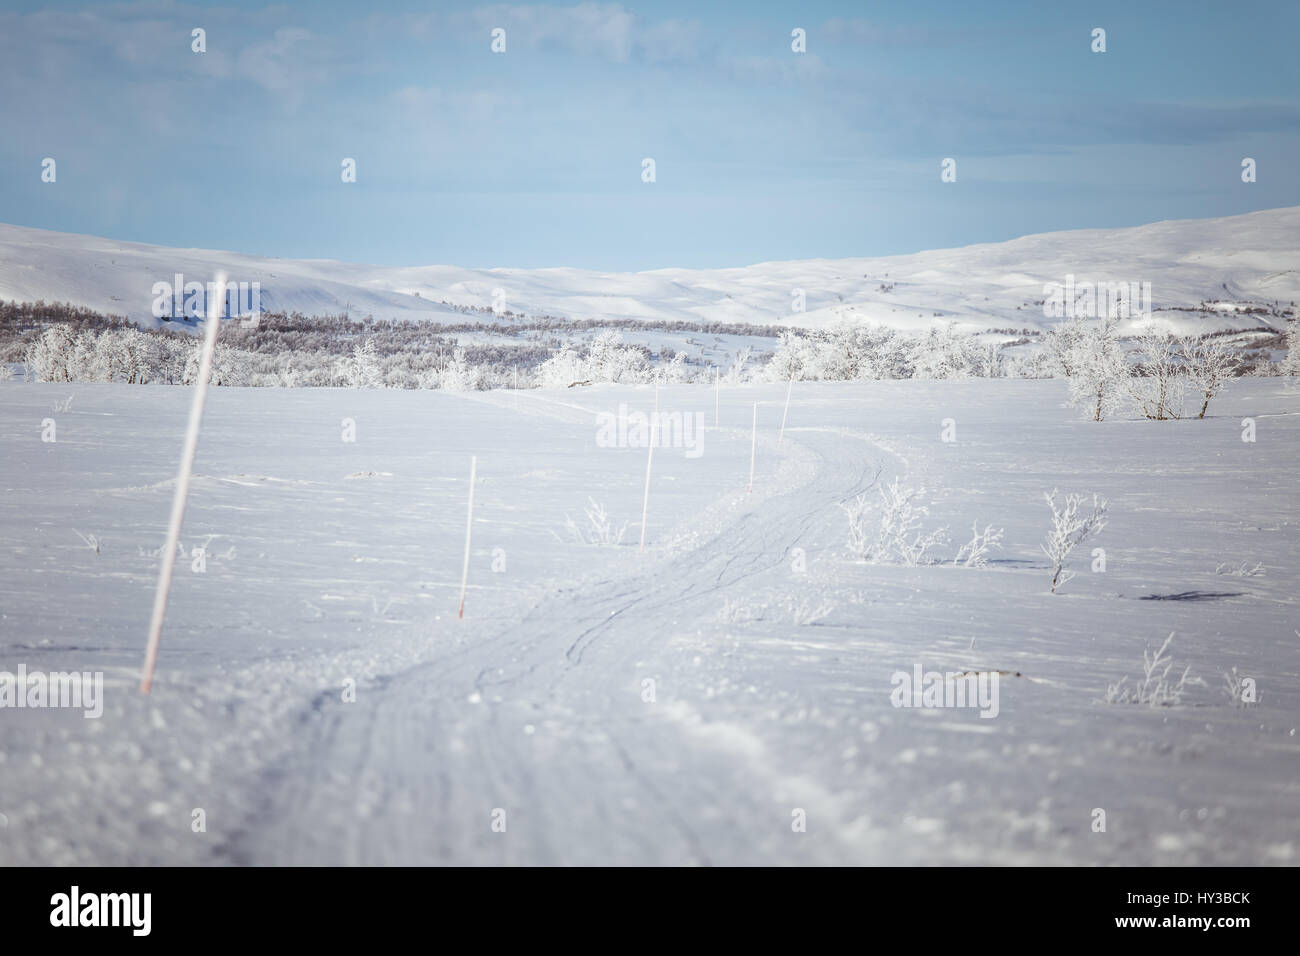 A beautiful white landscape of a snowy Norwegian winter day with tracks for snowmobile or dog sled - Stock Image